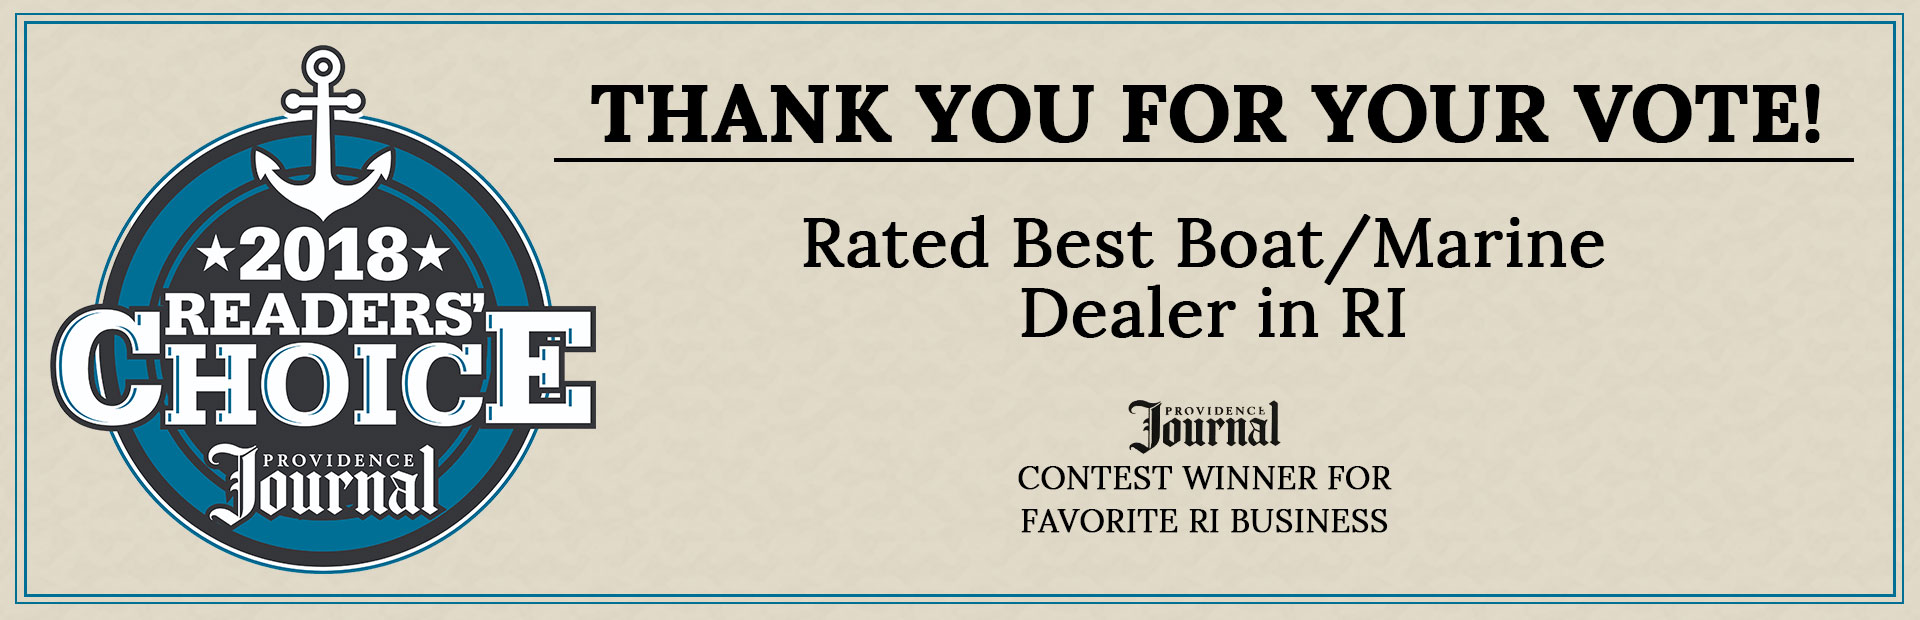 Twin City Marine was rated the best Boat/Marine Dealer in RI! Thank you for your vote!